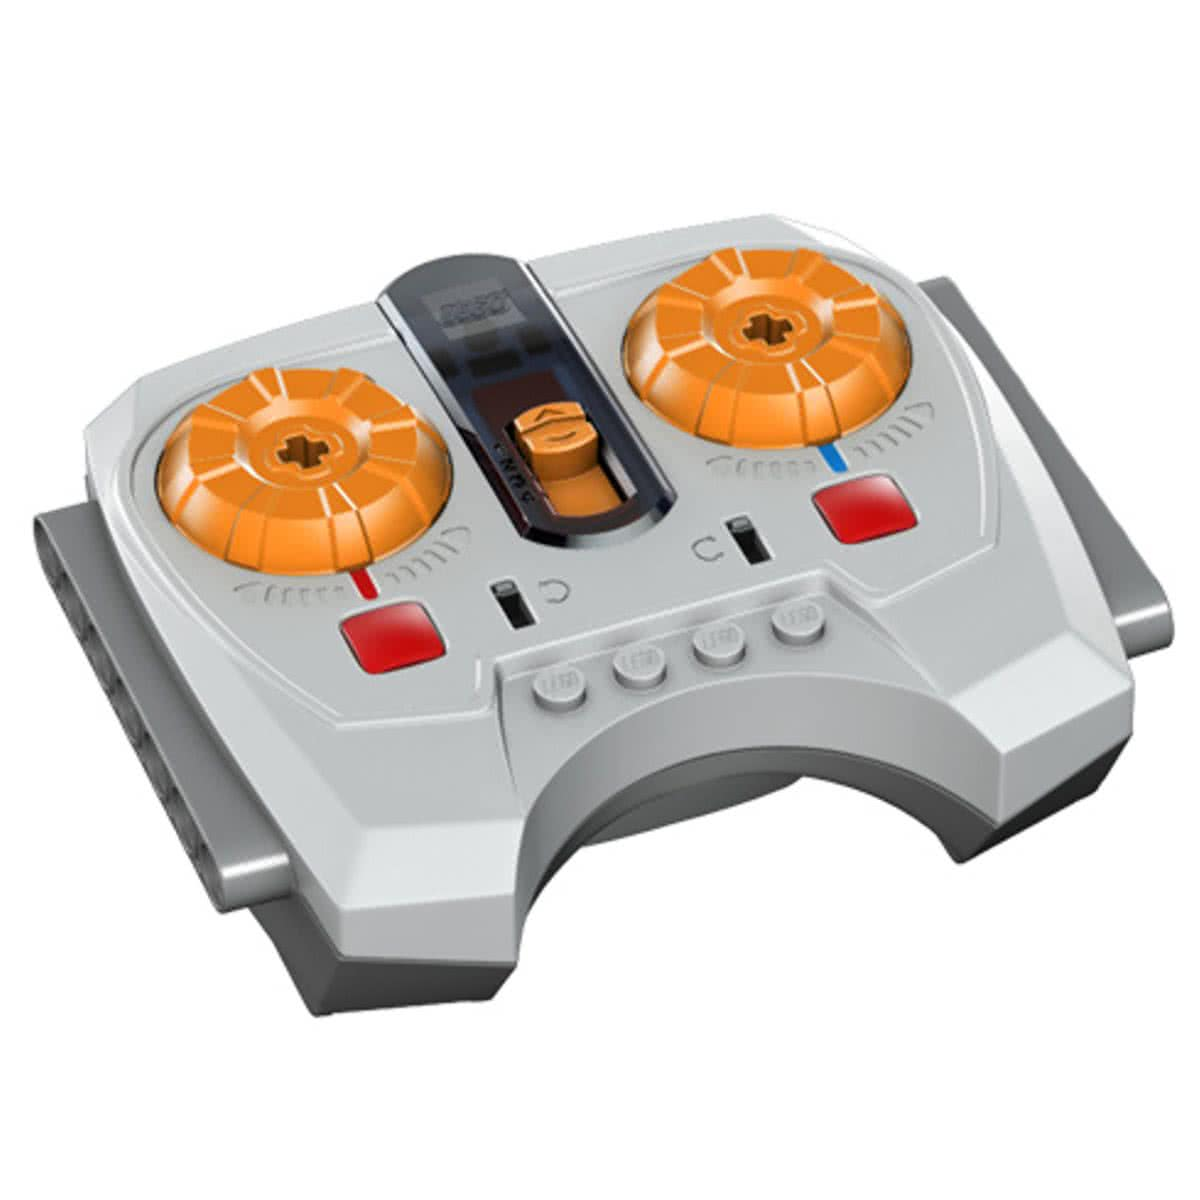 Lego : Power Functions Ir Speed Remote Control ( 8879 )